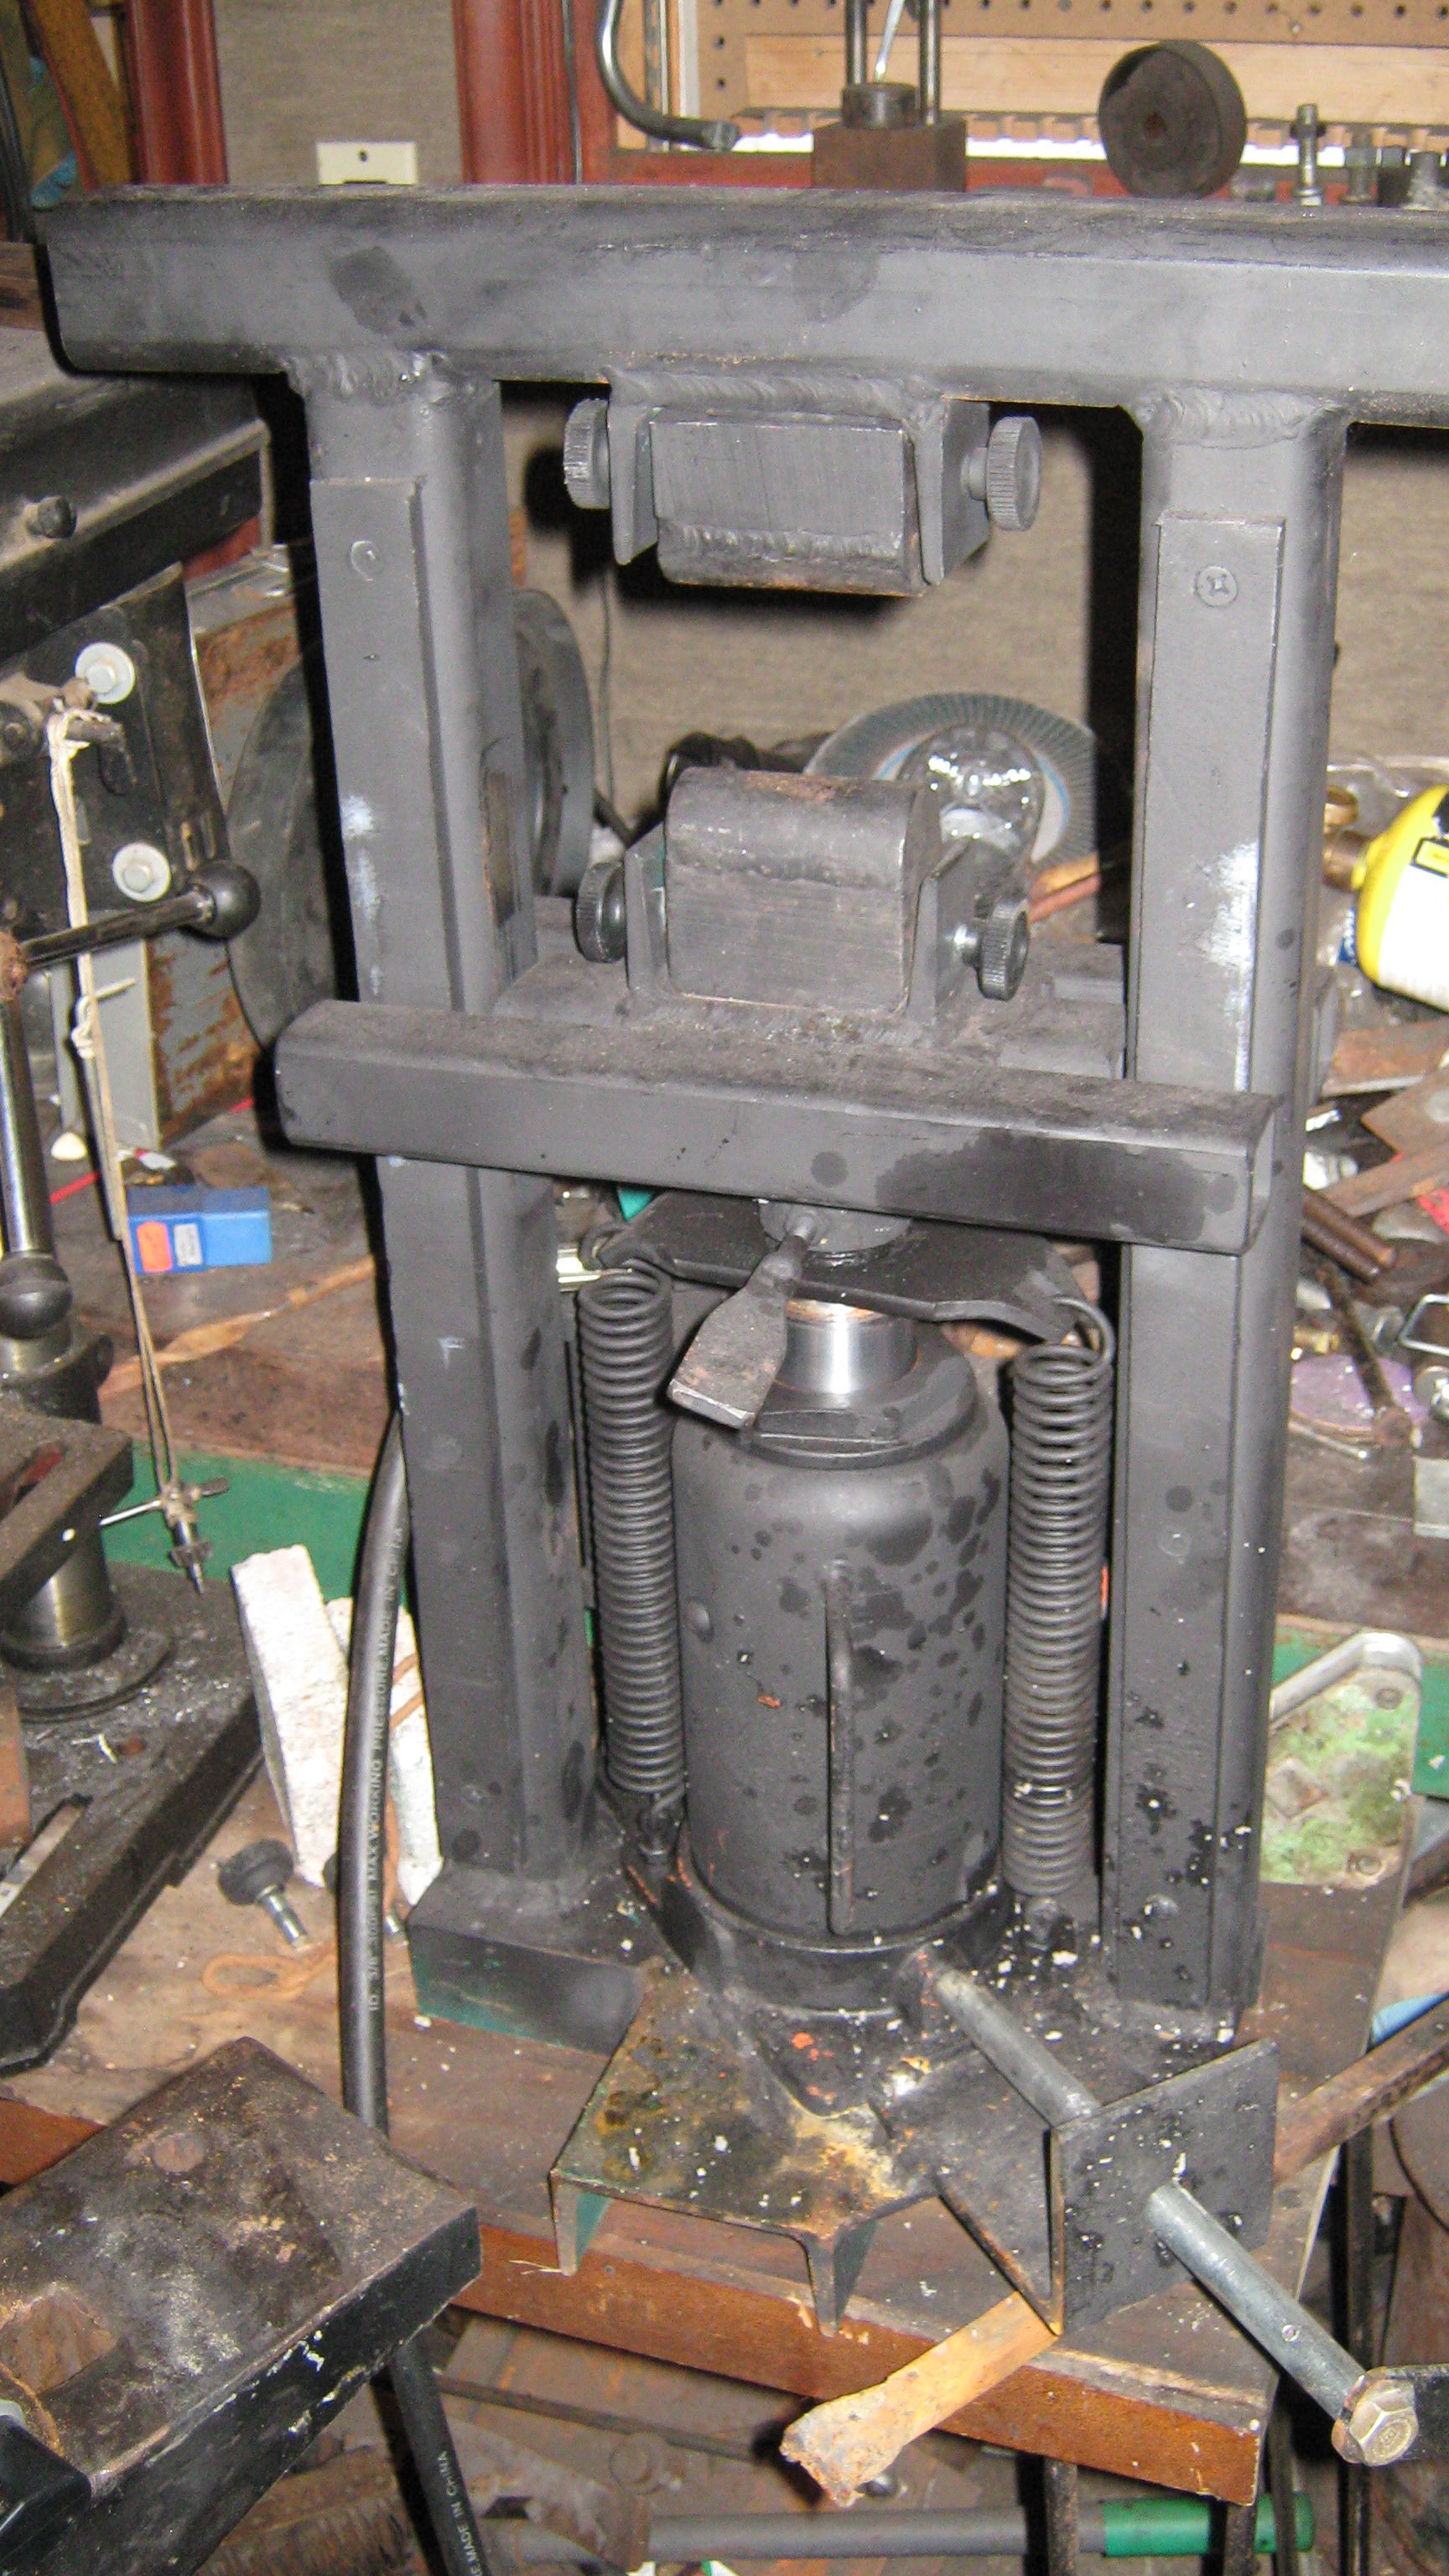 The Mini Hydraulic press Metal working tools, Power